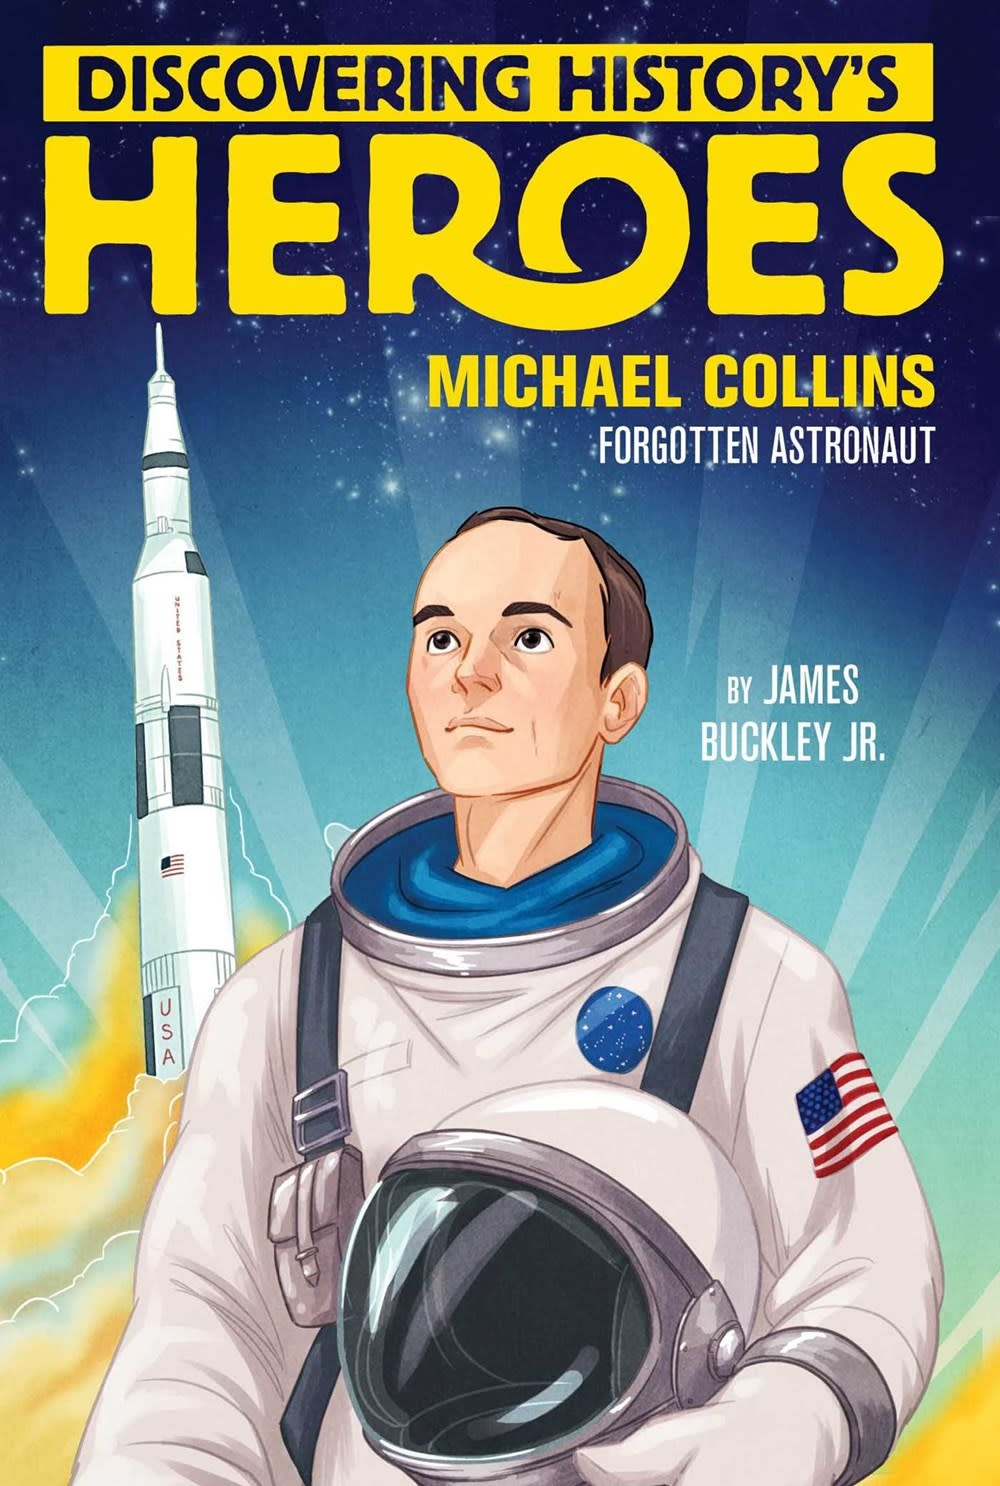 Aladdin Discovering History's Heroes: Michael Collins, Forgotten Astronaut